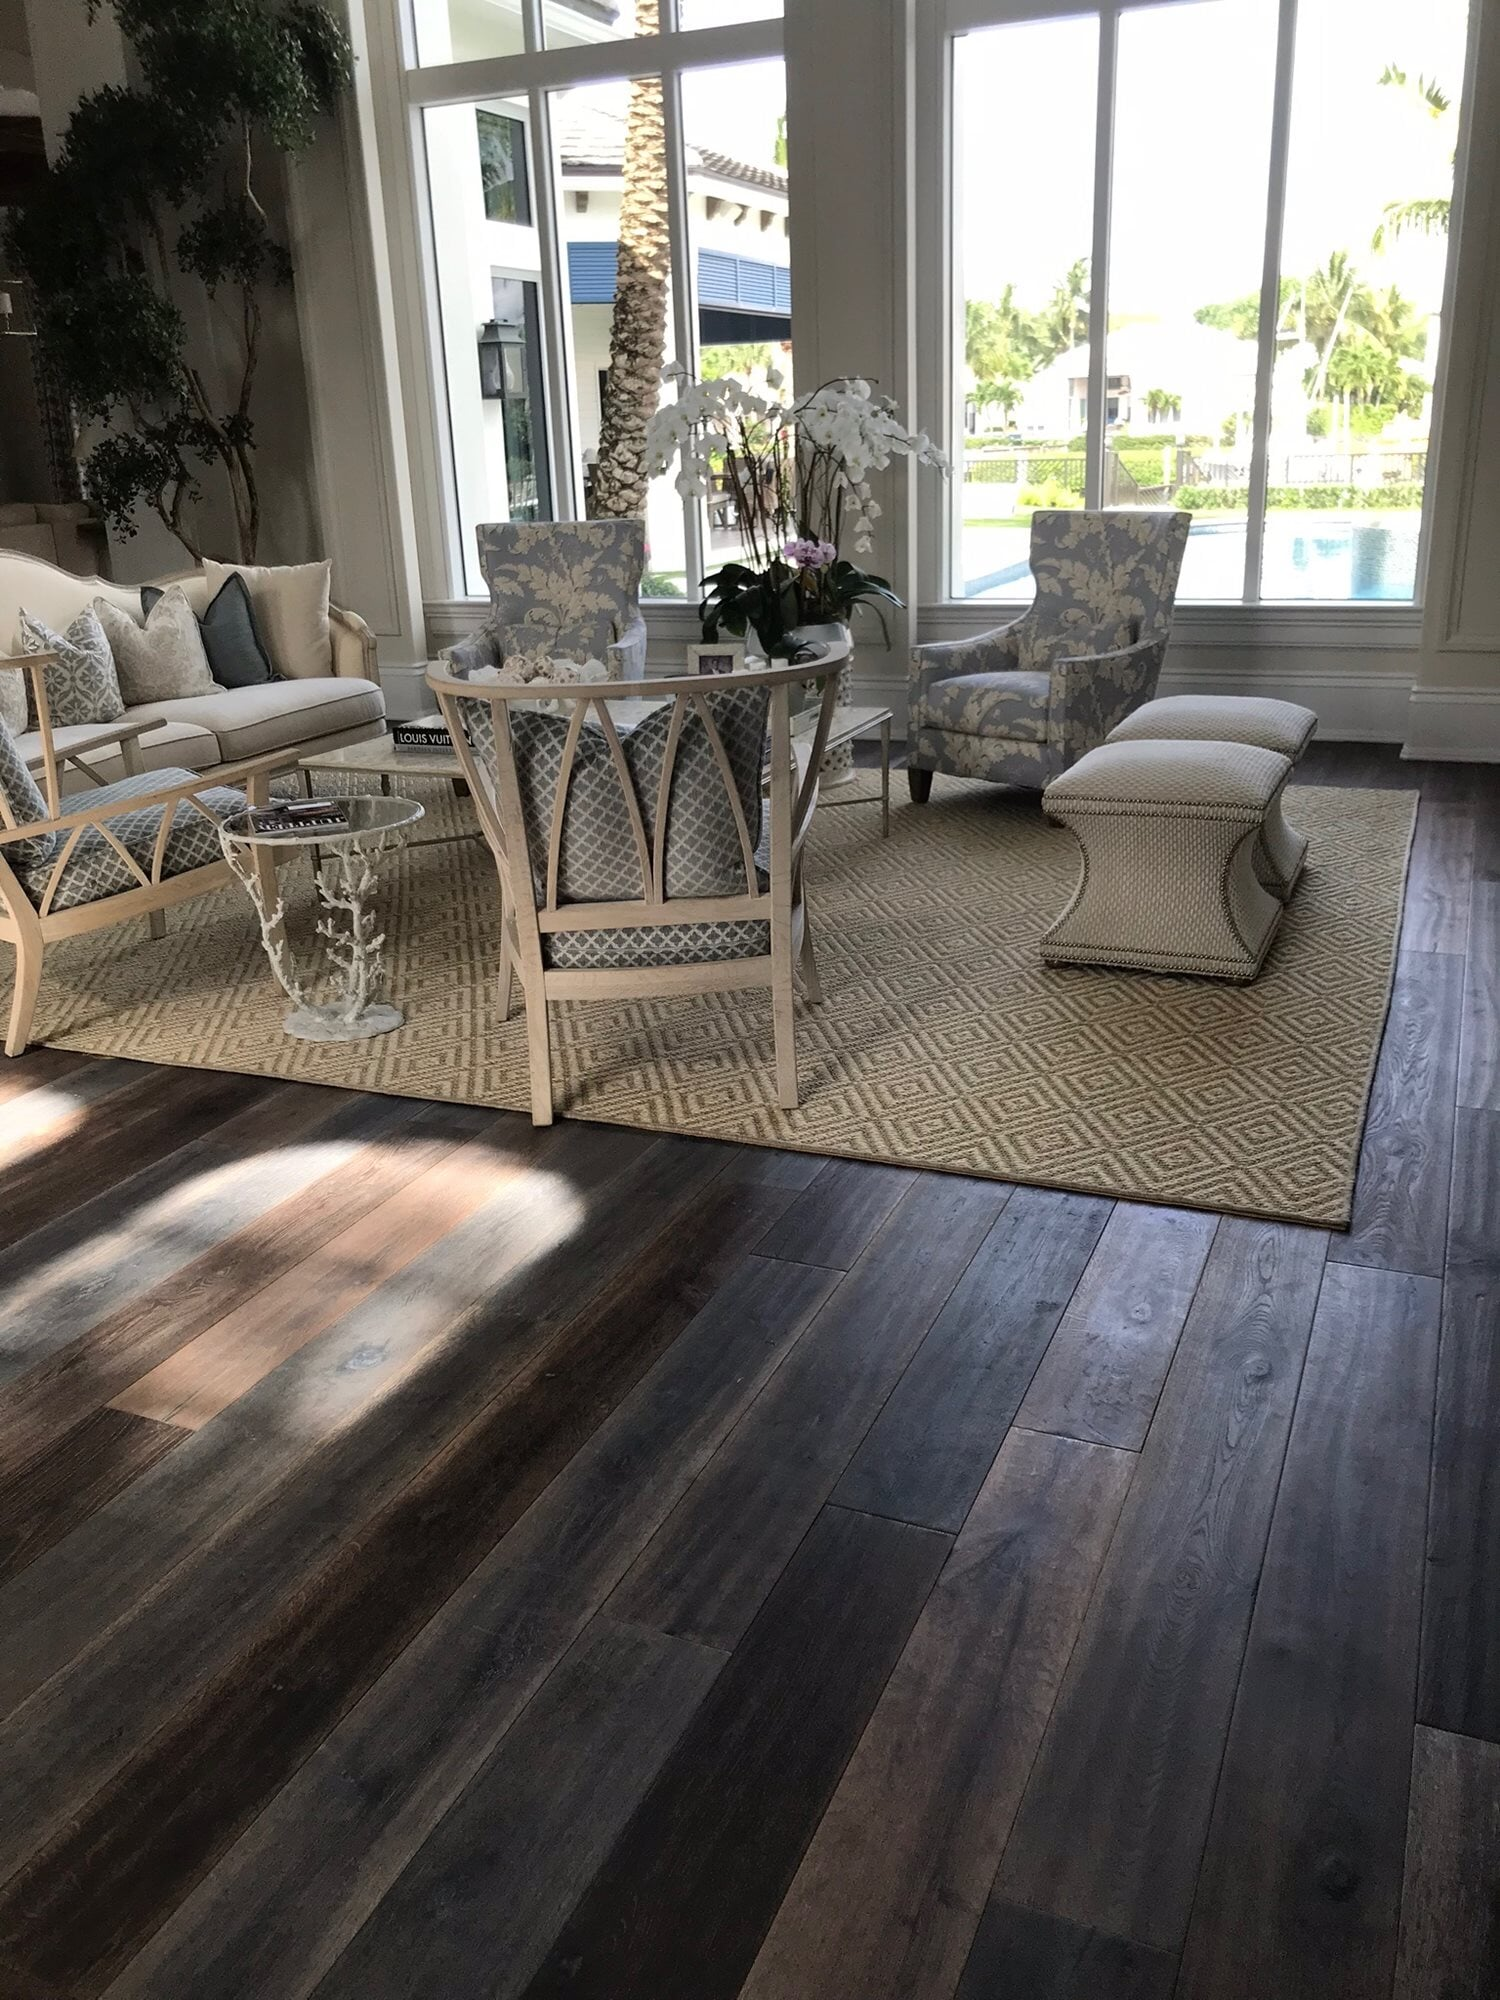 Rustic wood flooring in Jupiter, FL from Floors For You Kitchen & Bath